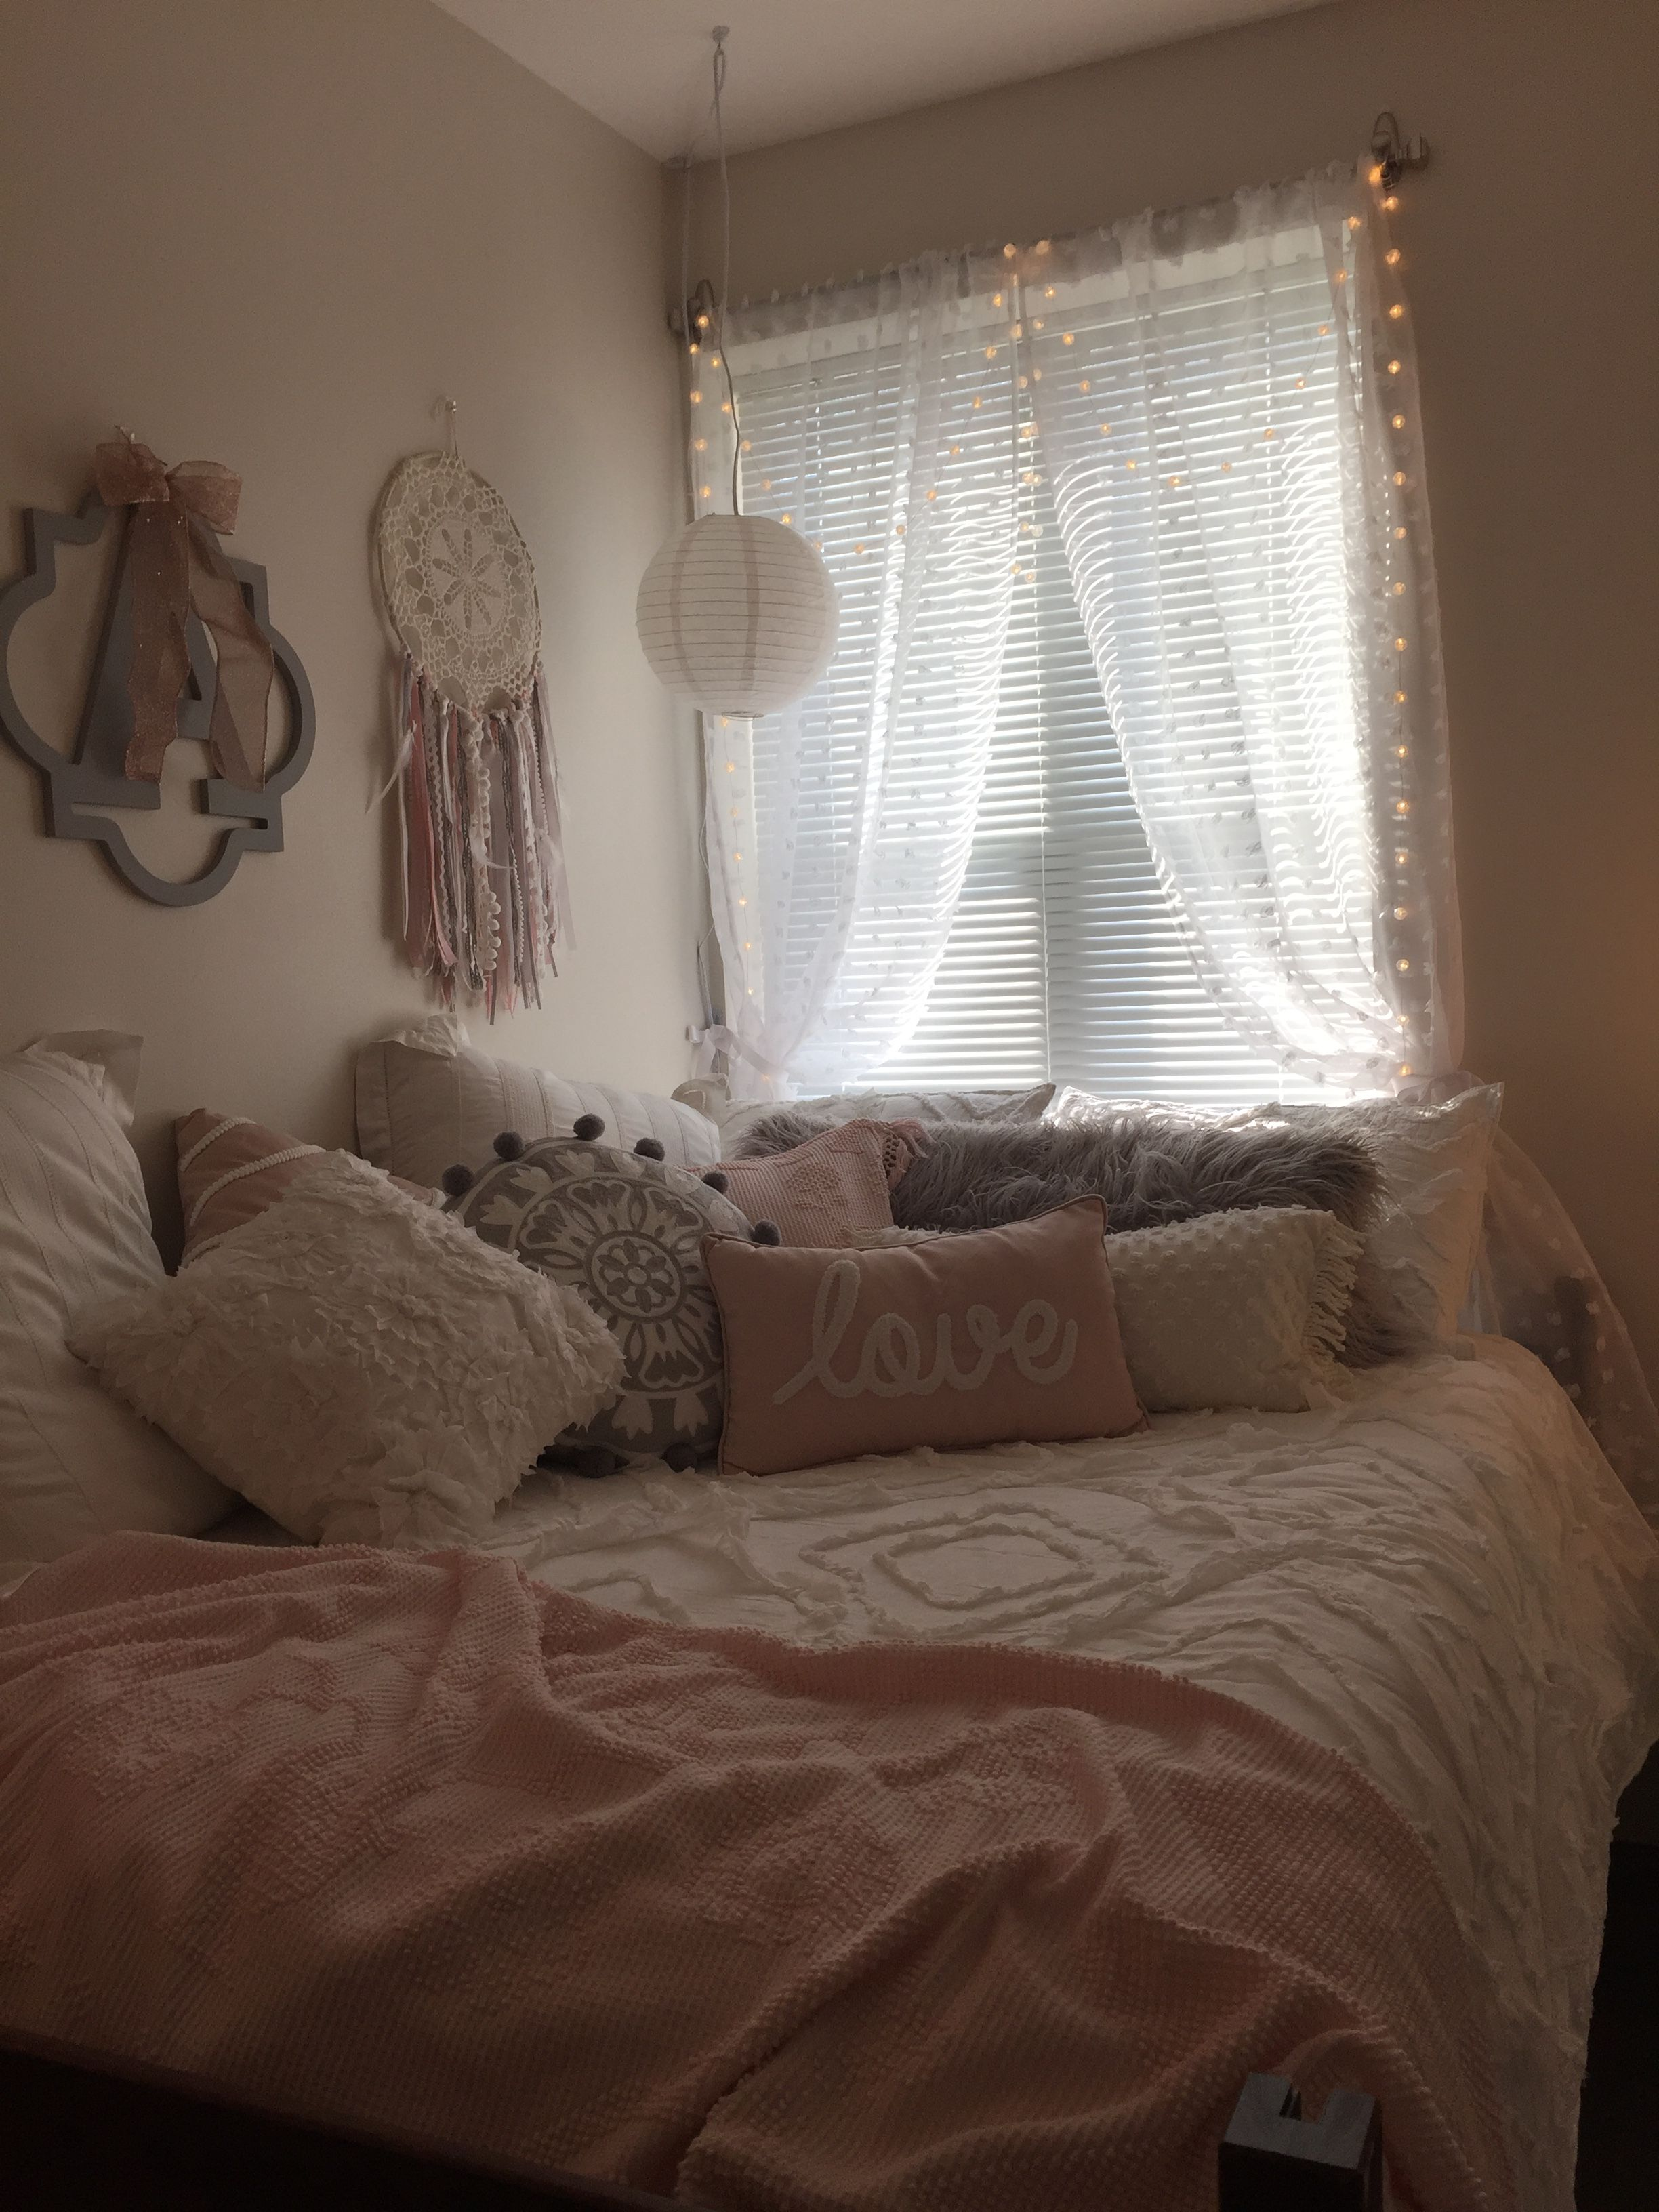 Bed covering window  pink and gray dorm room  dorm room decorating  pinterest  dorm